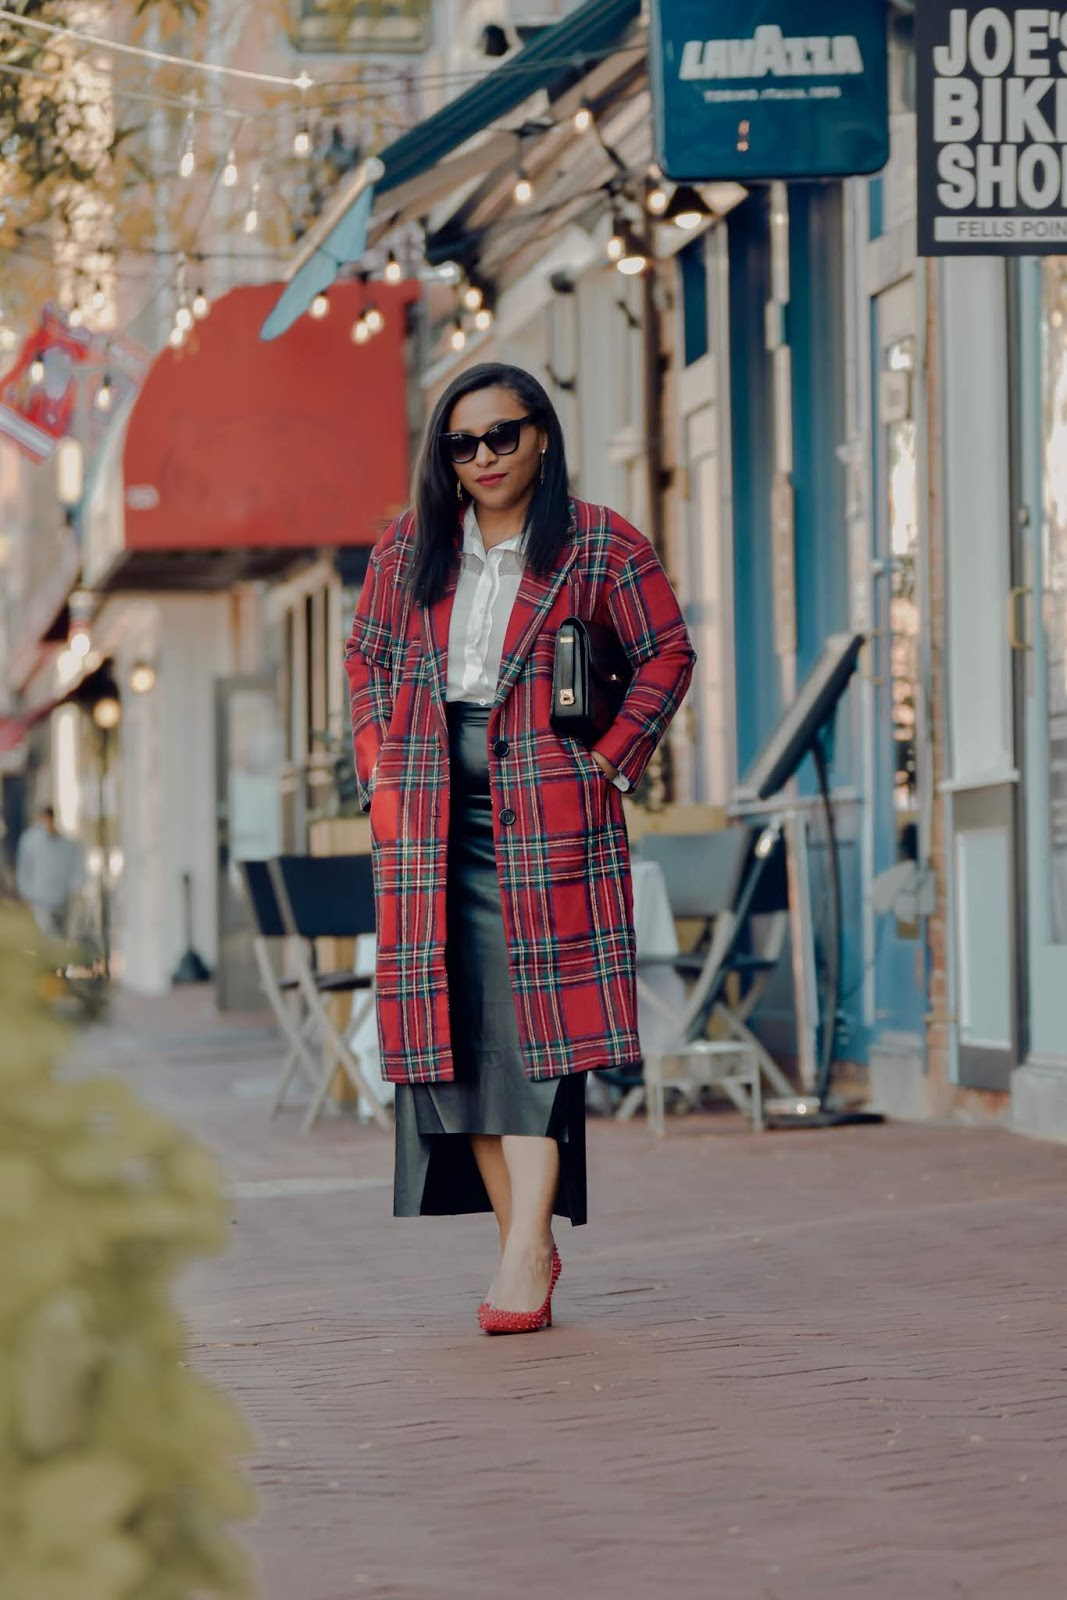 shein, shein clothing reviews, pattys kloset, holiday outfits, plaid coat, holiday wear, party outfits, chic winter outfits